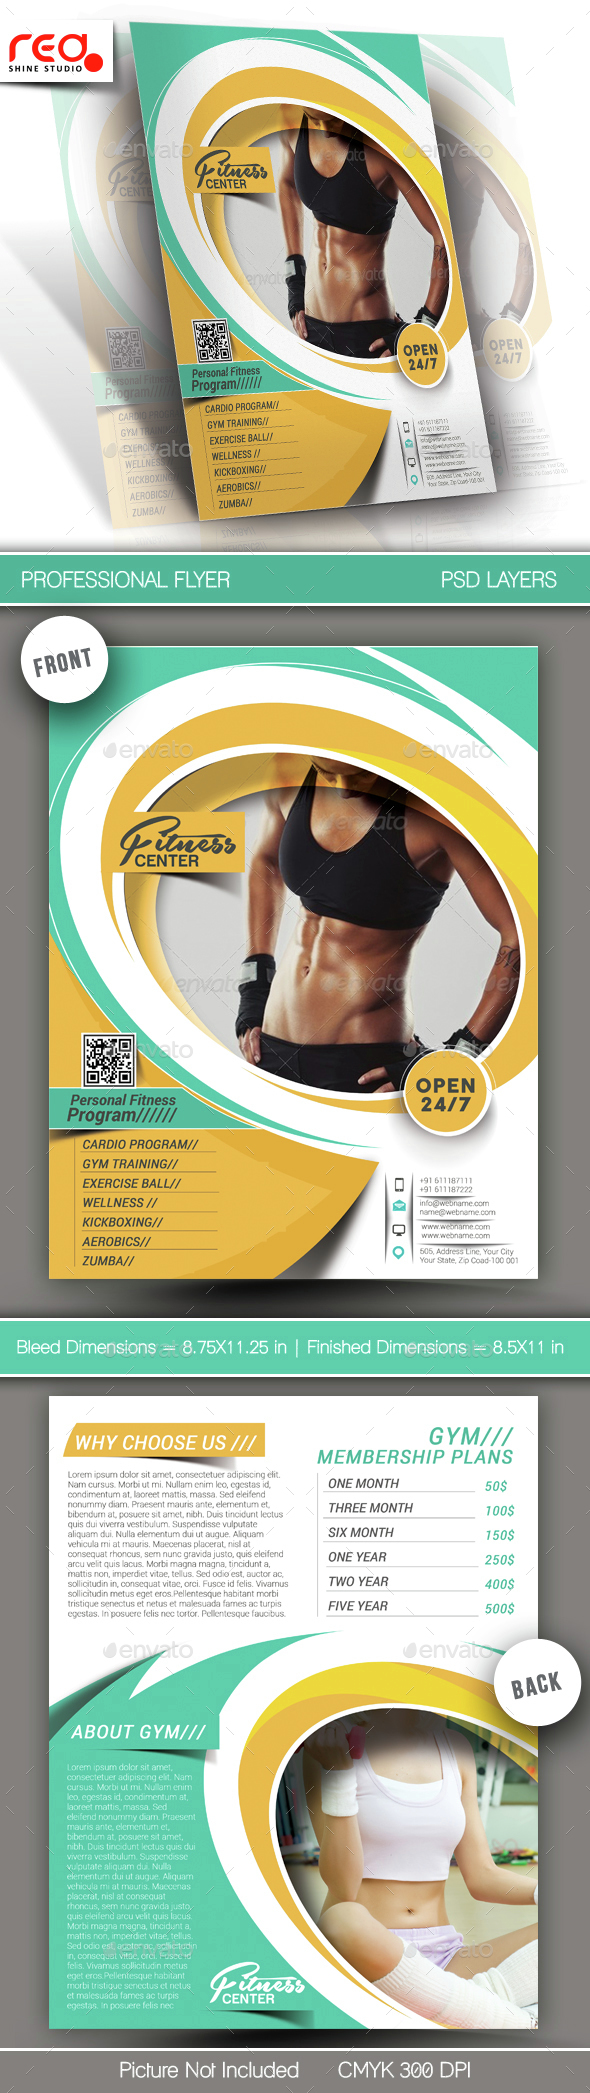 Fitness & Yoga Center Flyer & Poster Template - Sports Events